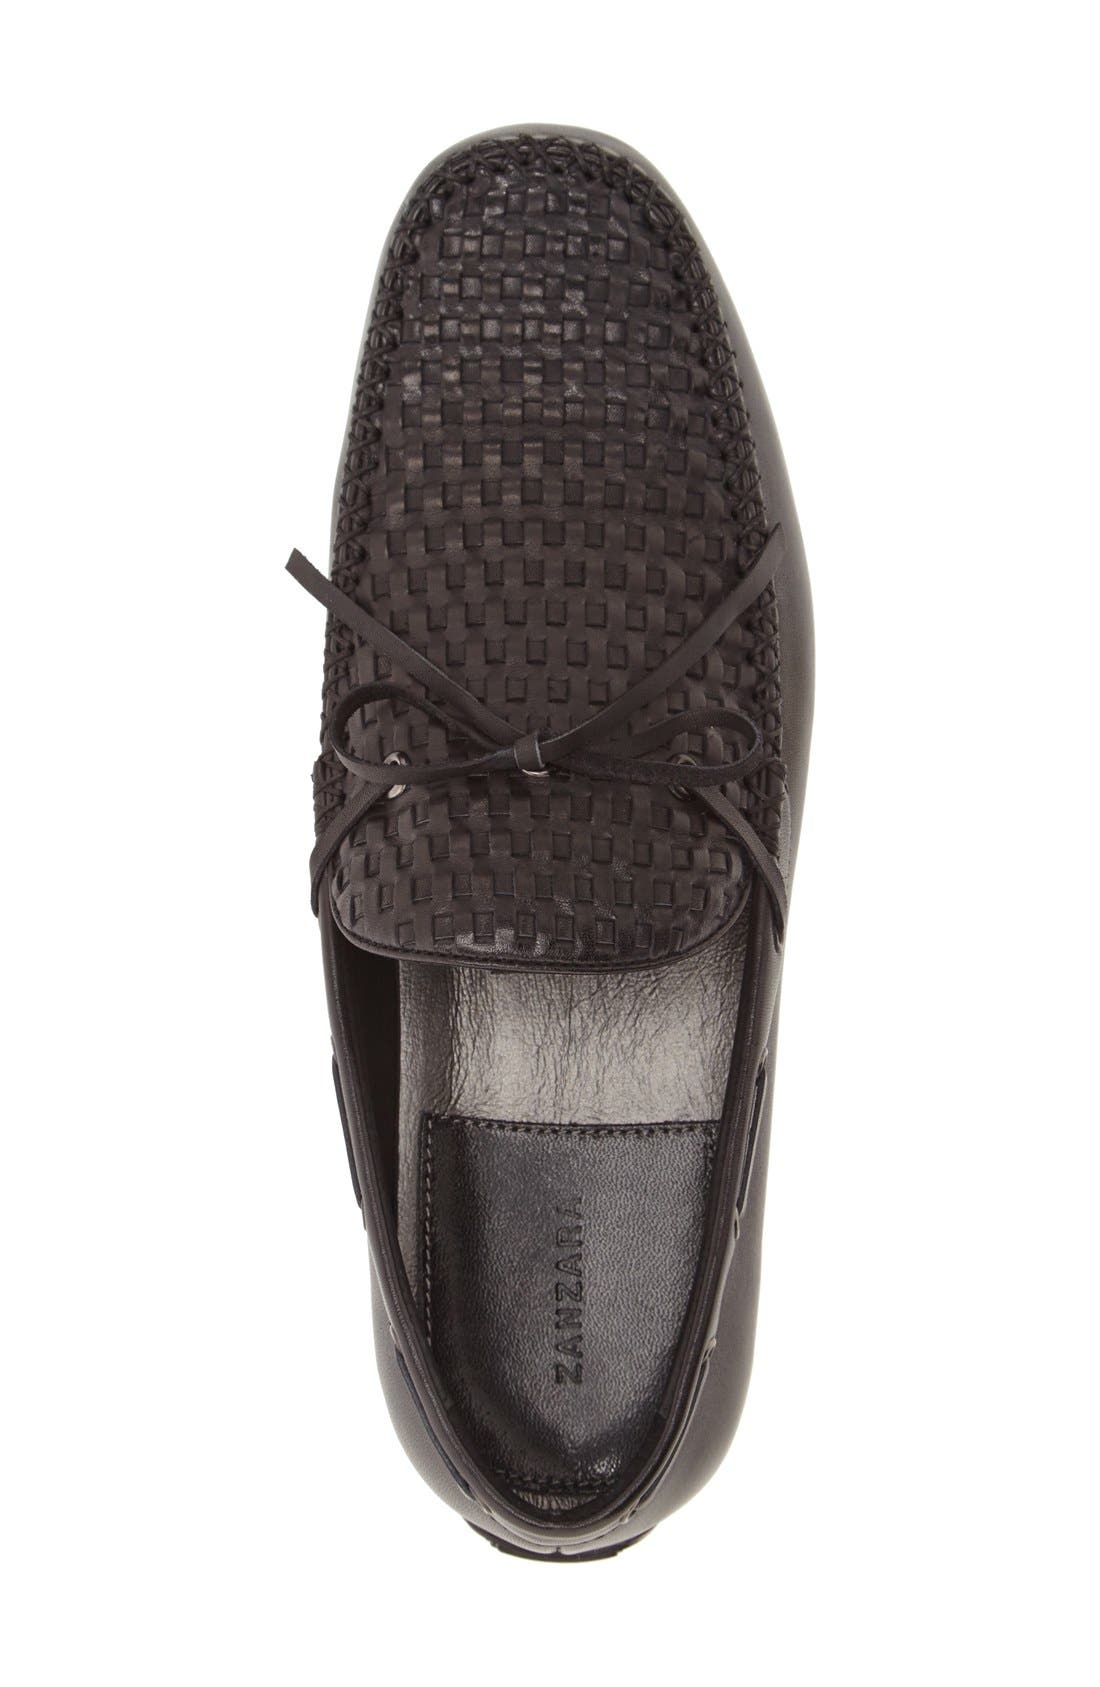 'Cezanne' Woven Tie Loafer,                             Alternate thumbnail 3, color,                             BLACK